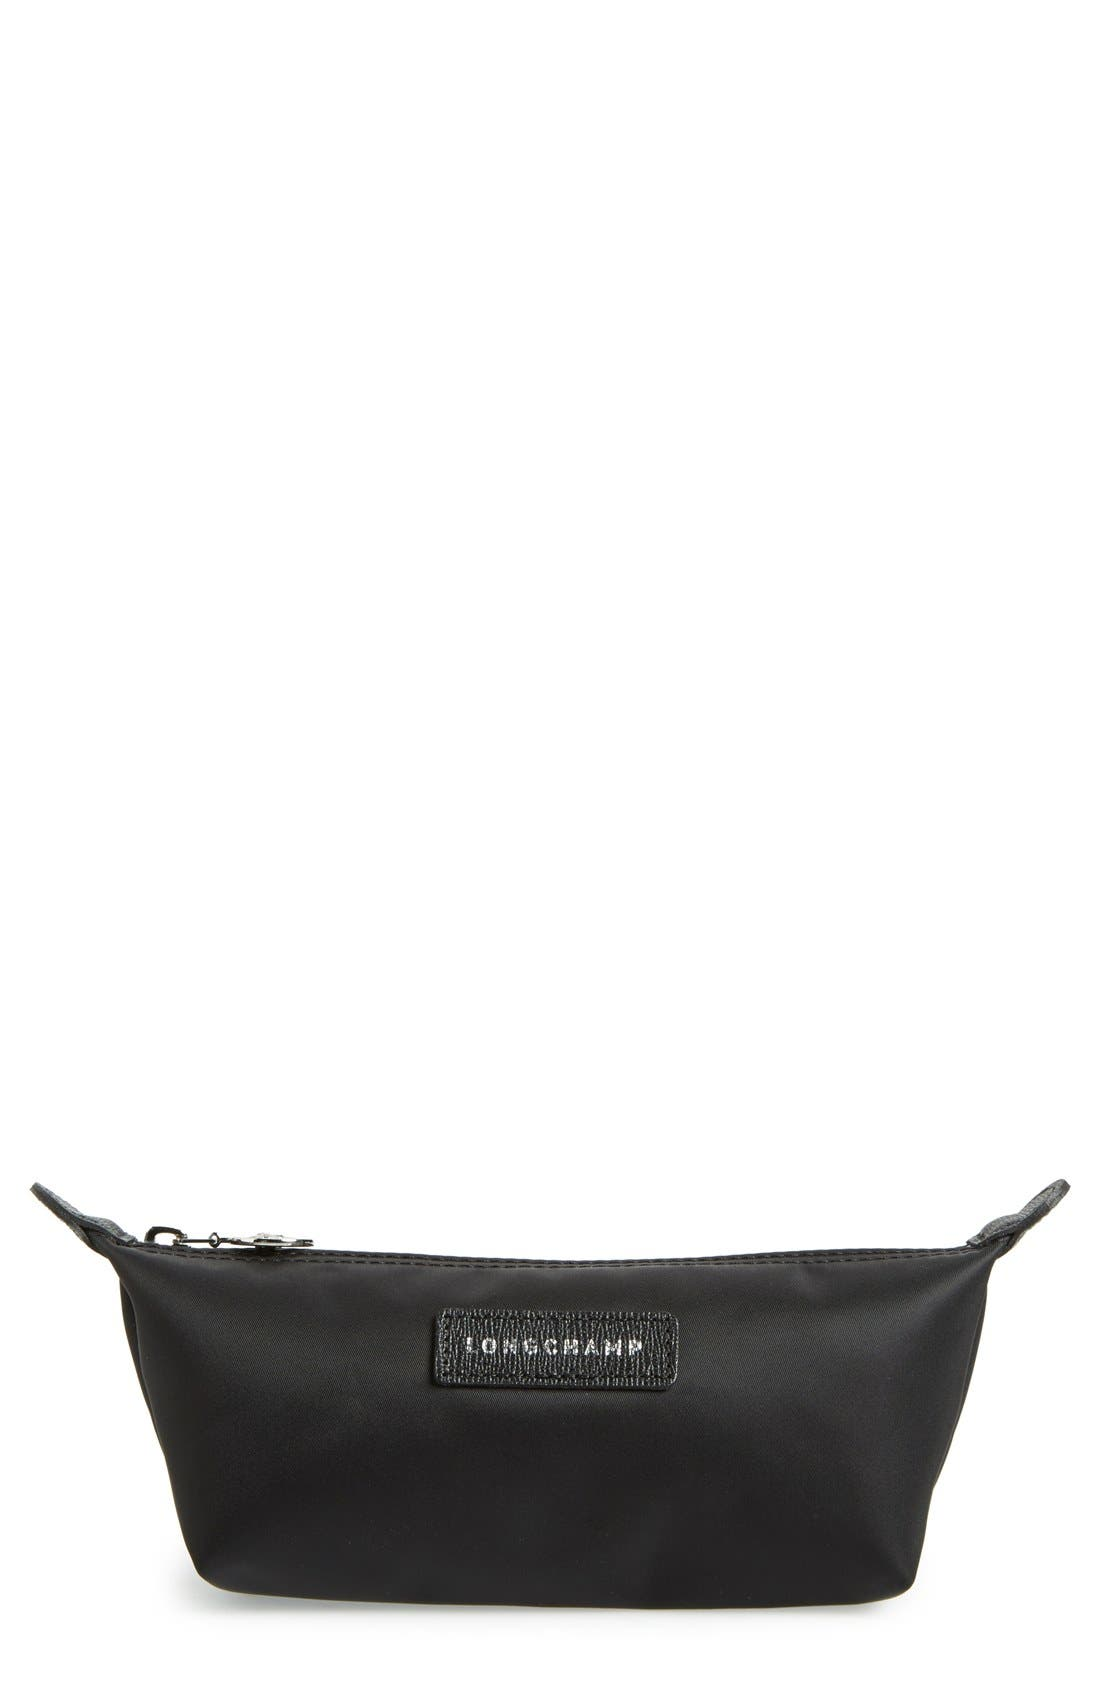 Longchamp 'Neo' Nylon Cosmetics Case